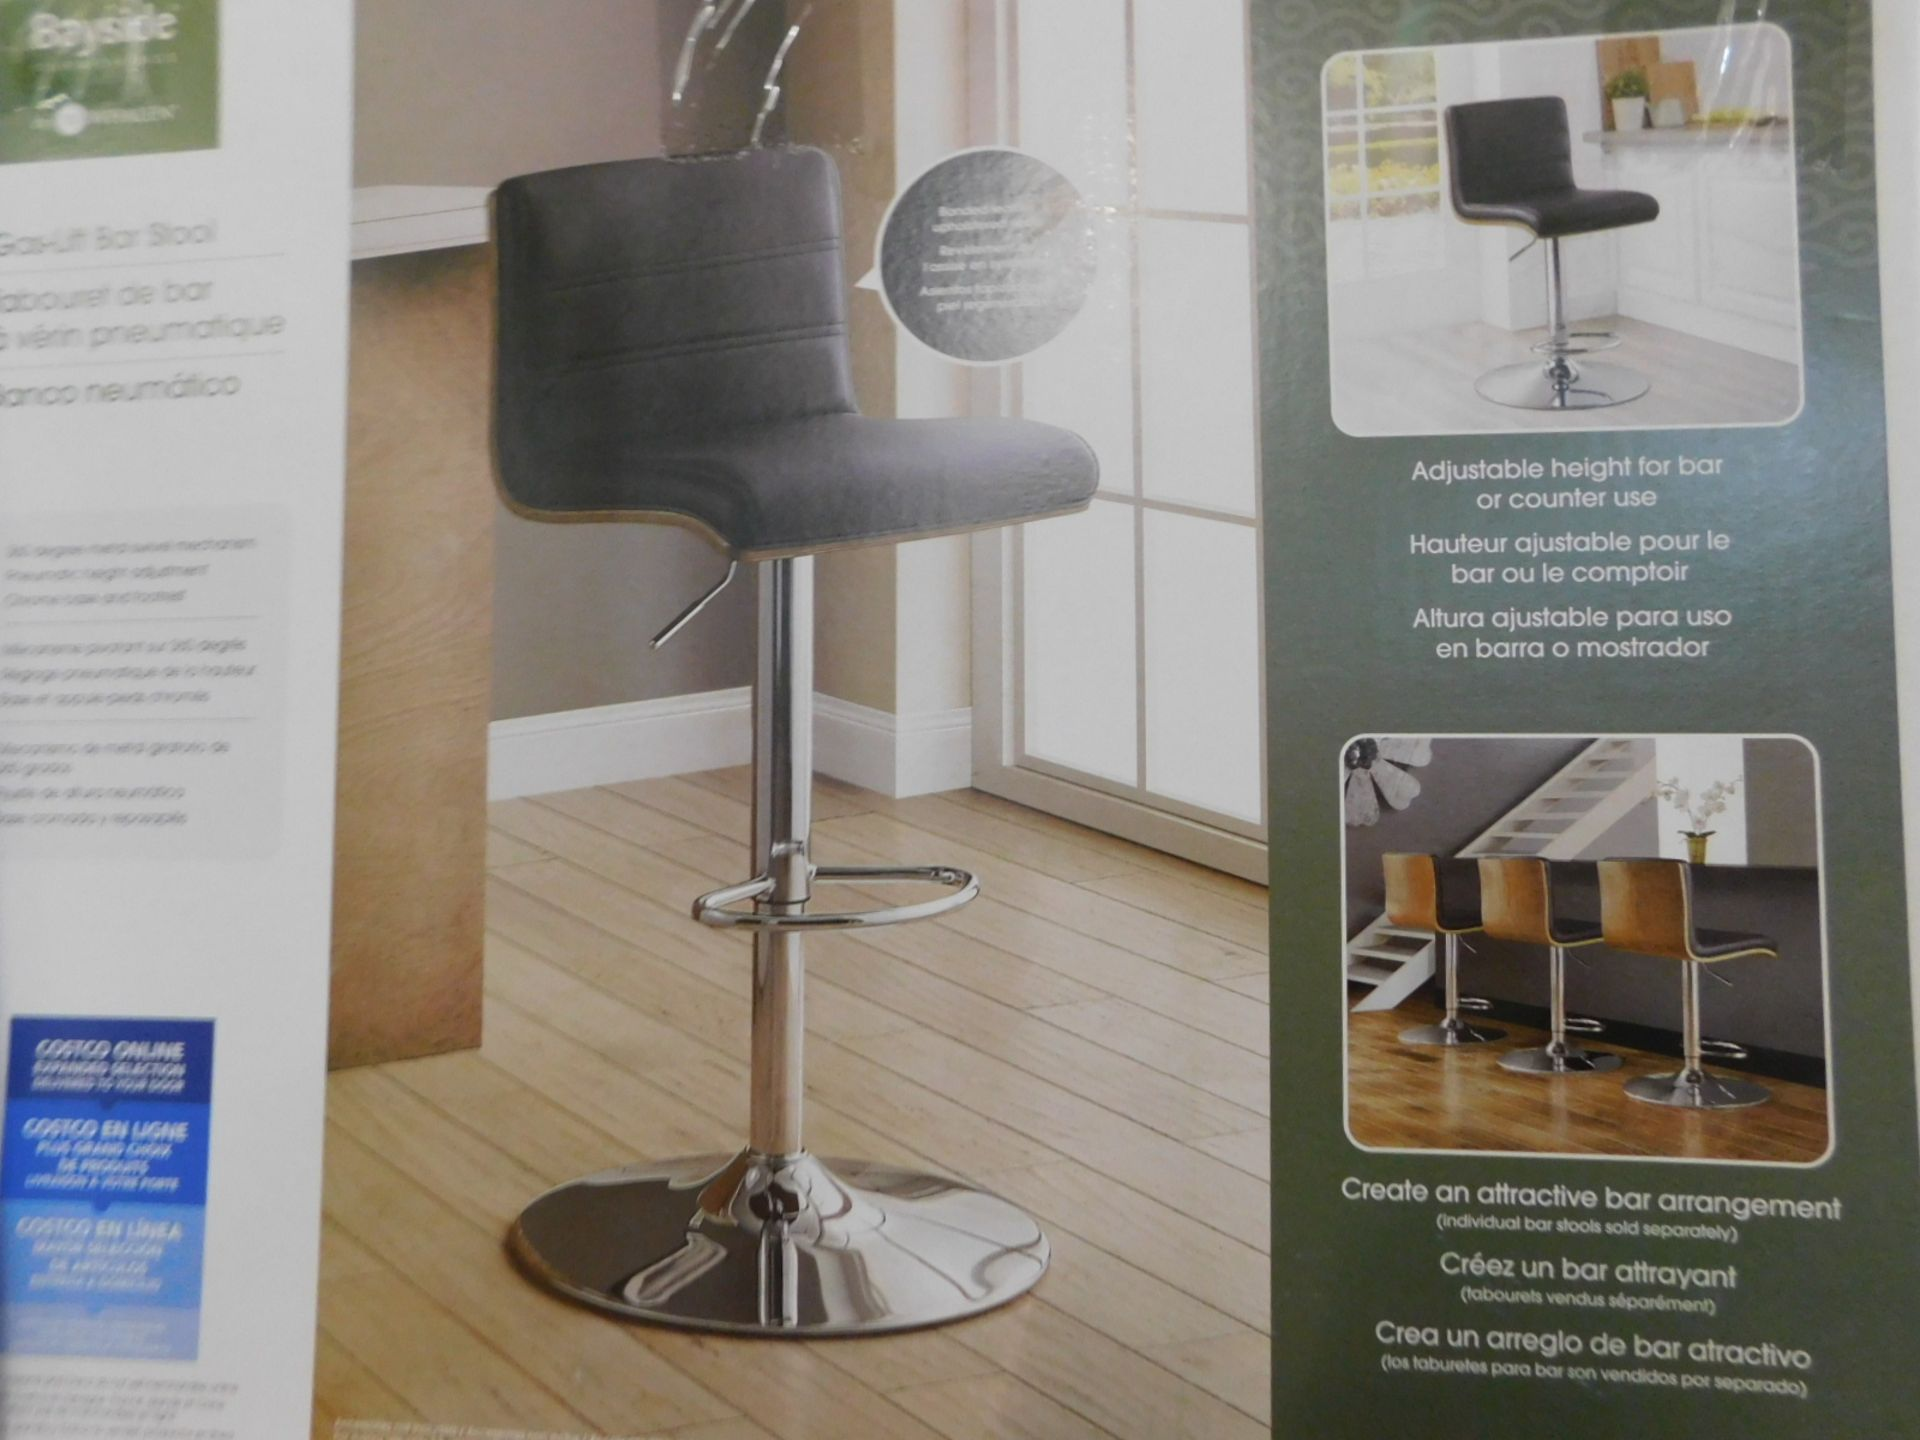 1 BOXED BAYSIDE FURNISHINGS BLACK FAUX LEATHER AND WOODEN BACK GAS LIFT BAR STOOL RRP £119.99